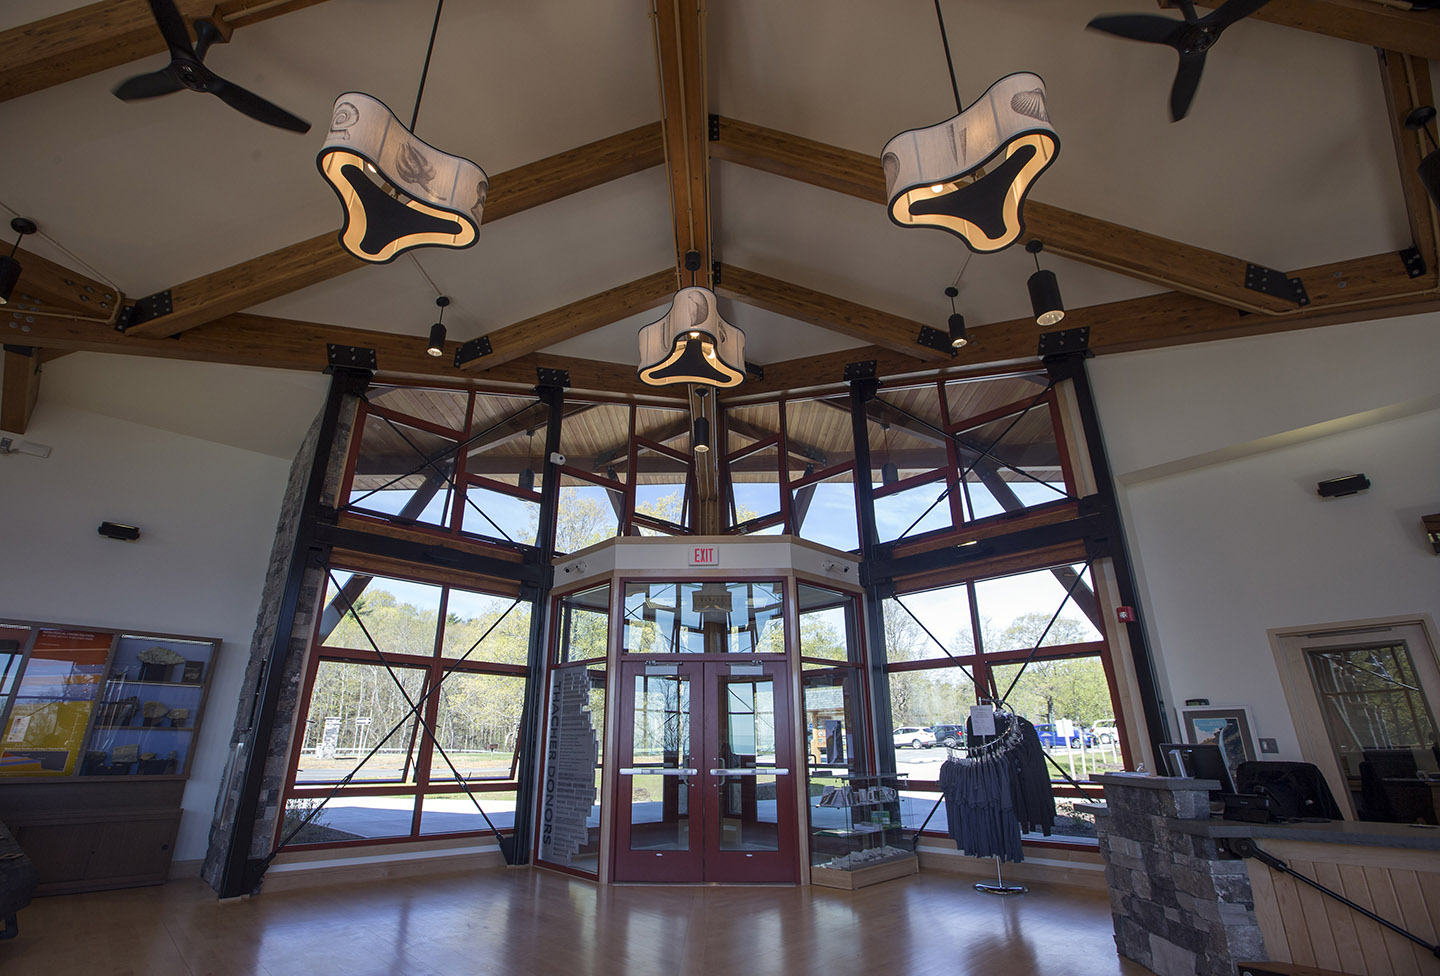 Entry way of Thacher Park Center, featuring the fossil pendant lamps.